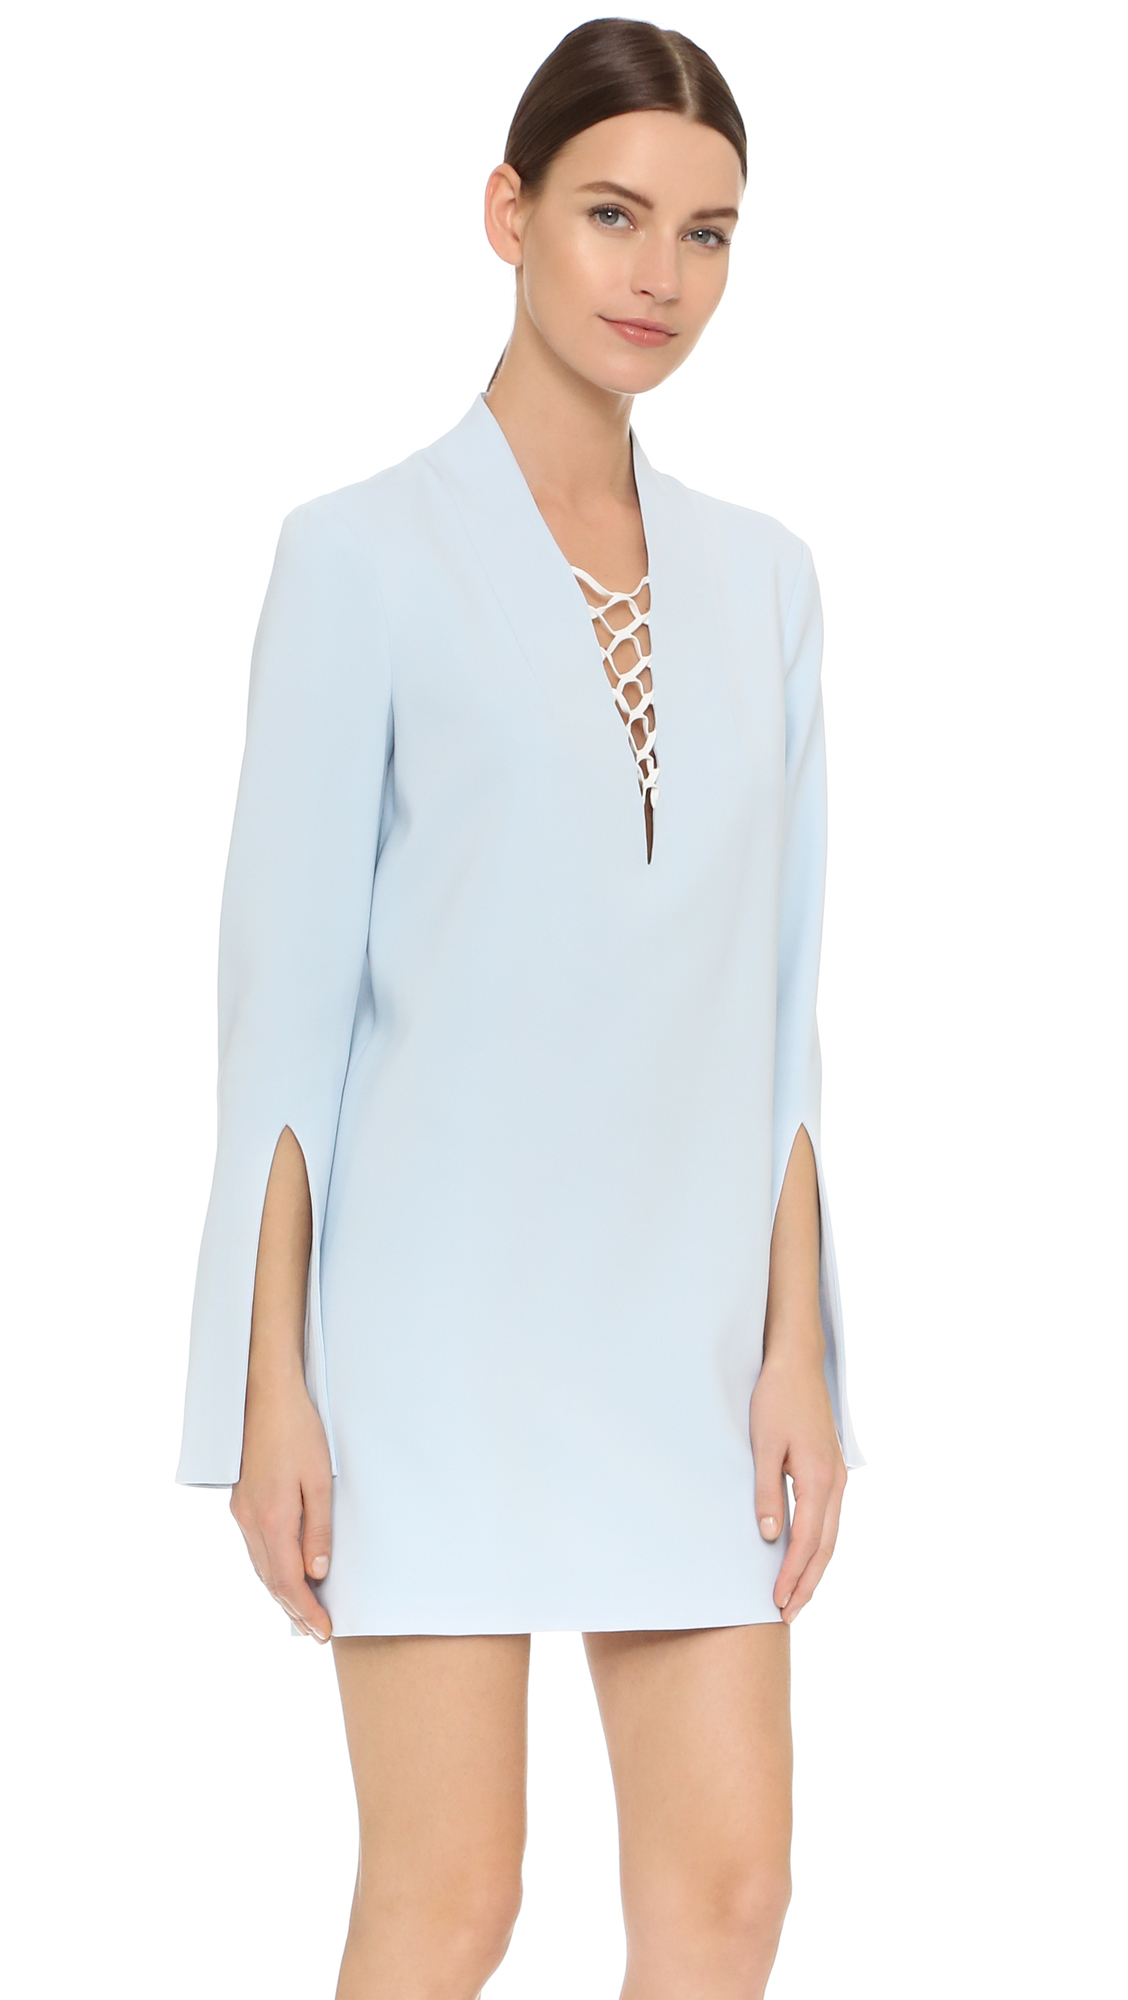 914ee67499a Dion Lee Mesh Laced Dress in Blue - Lyst